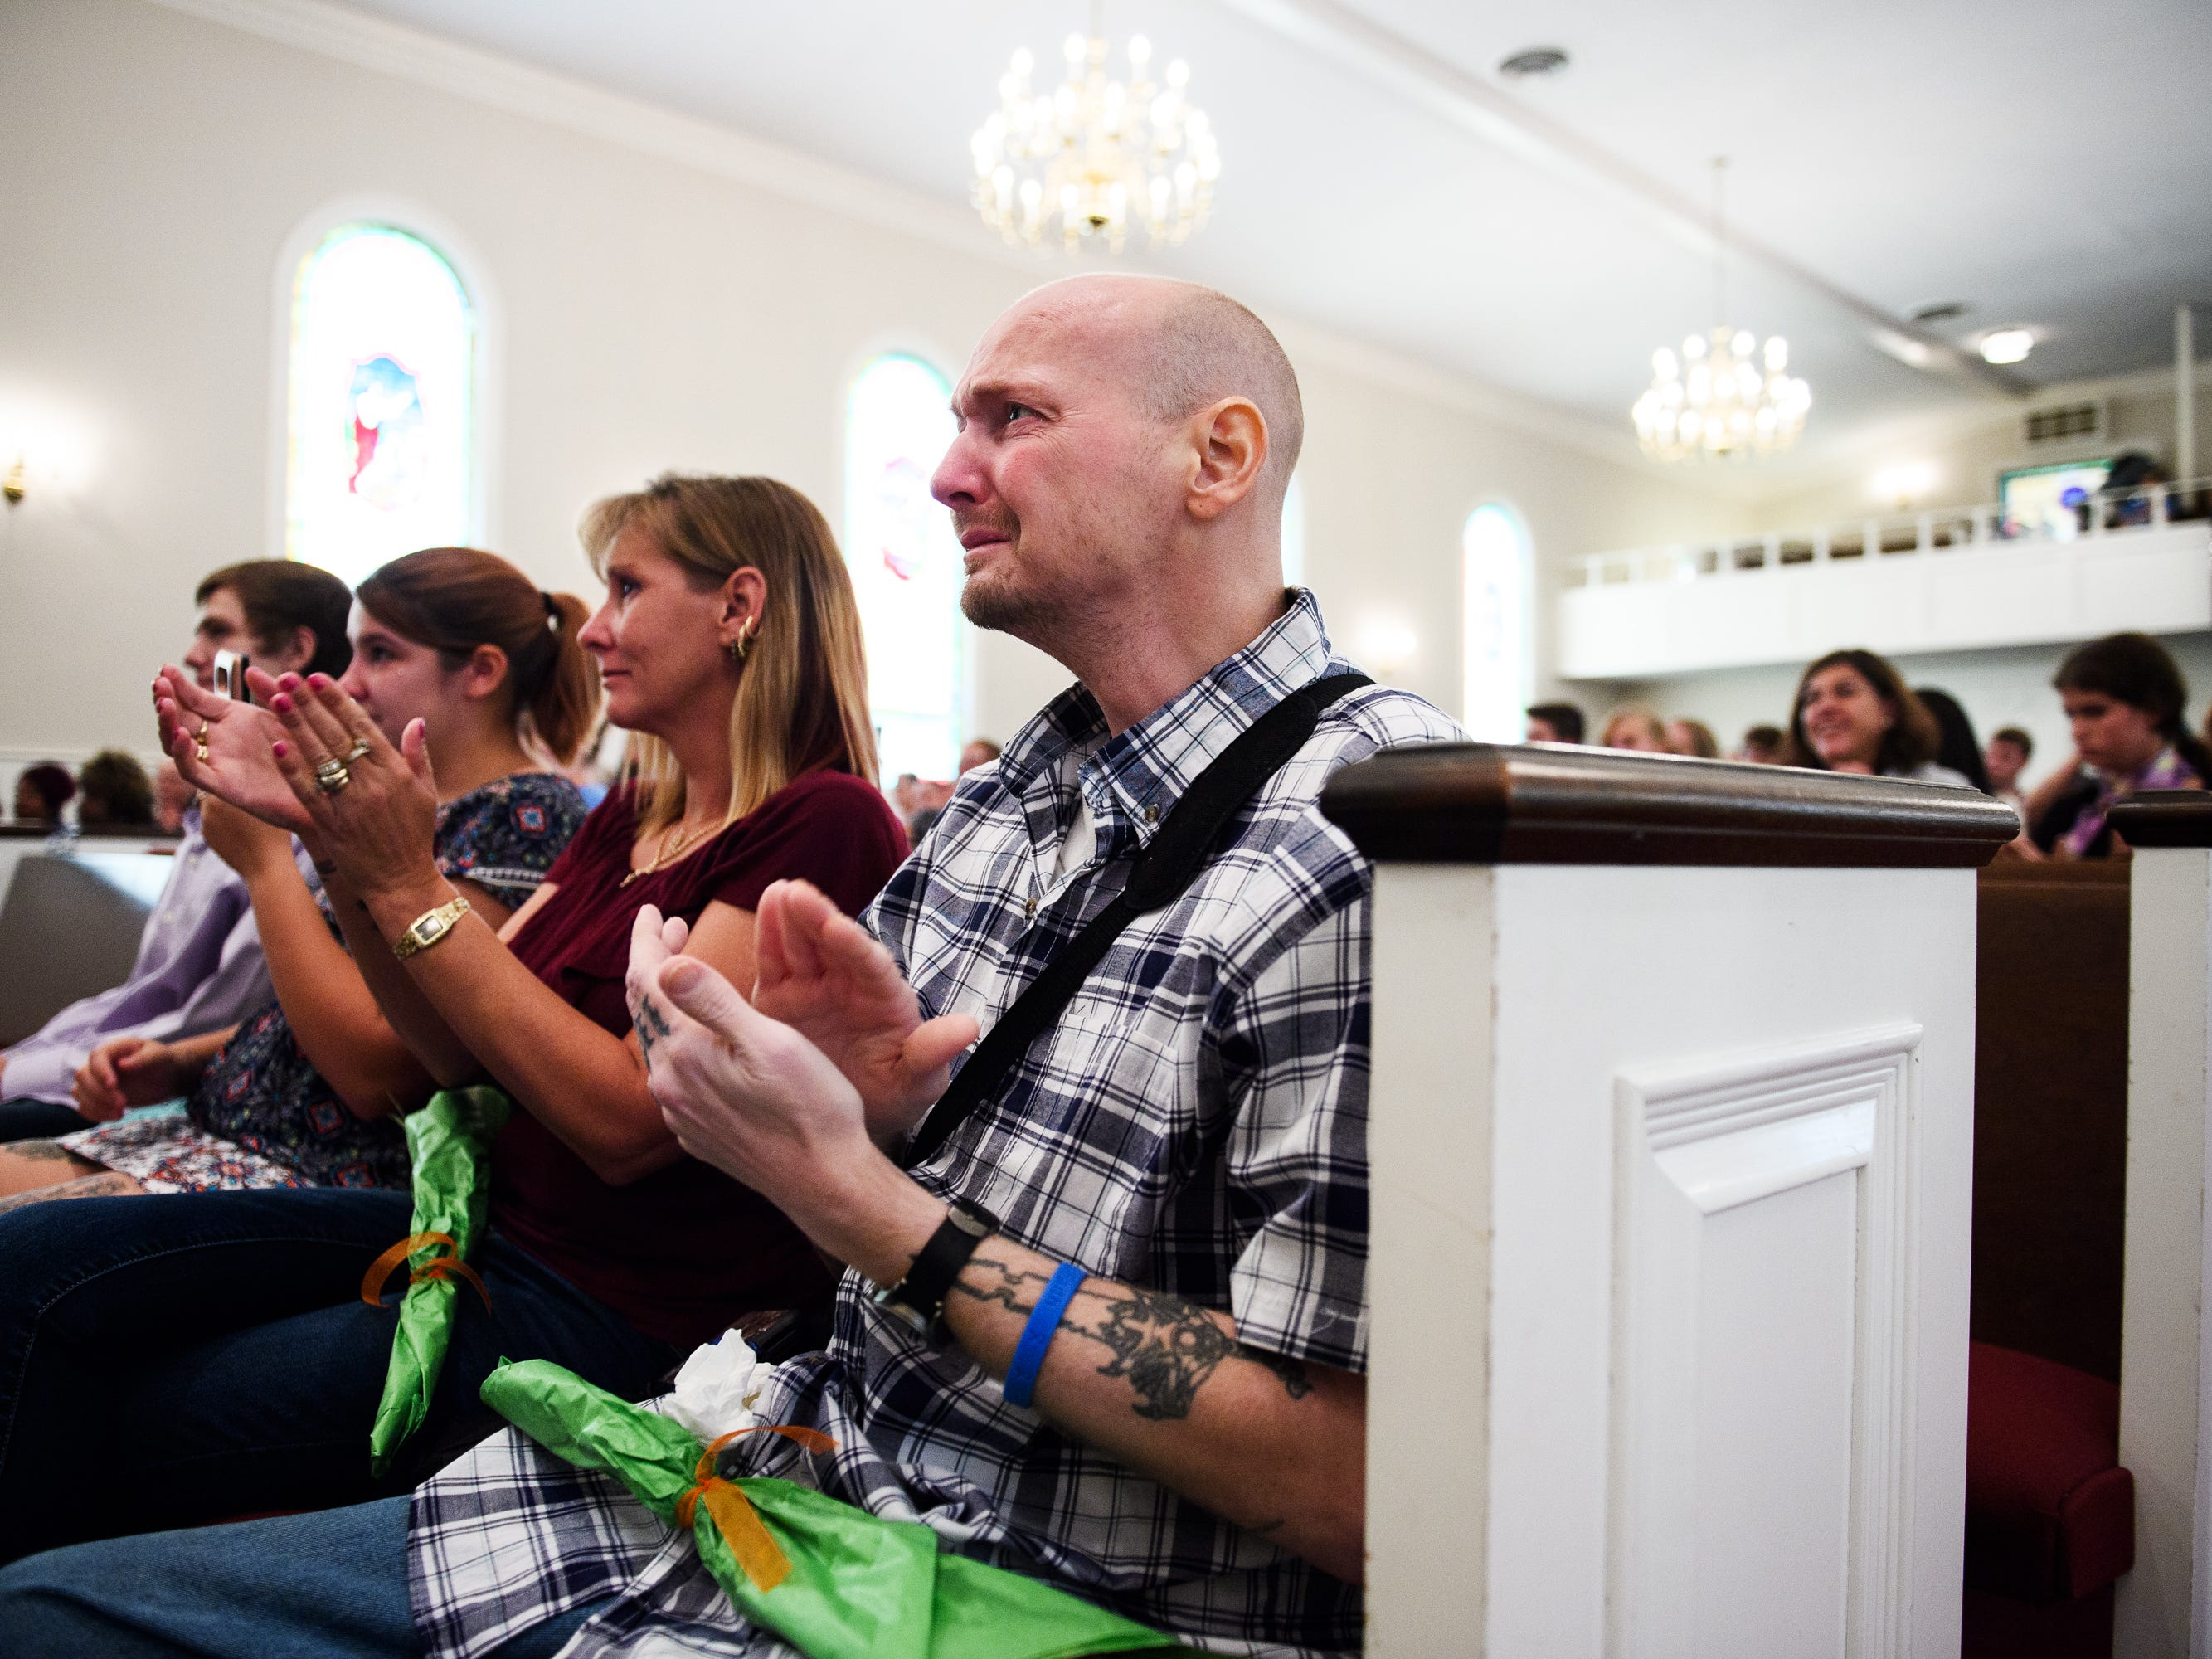 Nicholas Hughes cries as he applauds during a surprise graduation ceremony for his son Joshua Lee Vanghn at Pleasant Grove Baptist Church on Tuesday, Oct. 9, 2018.